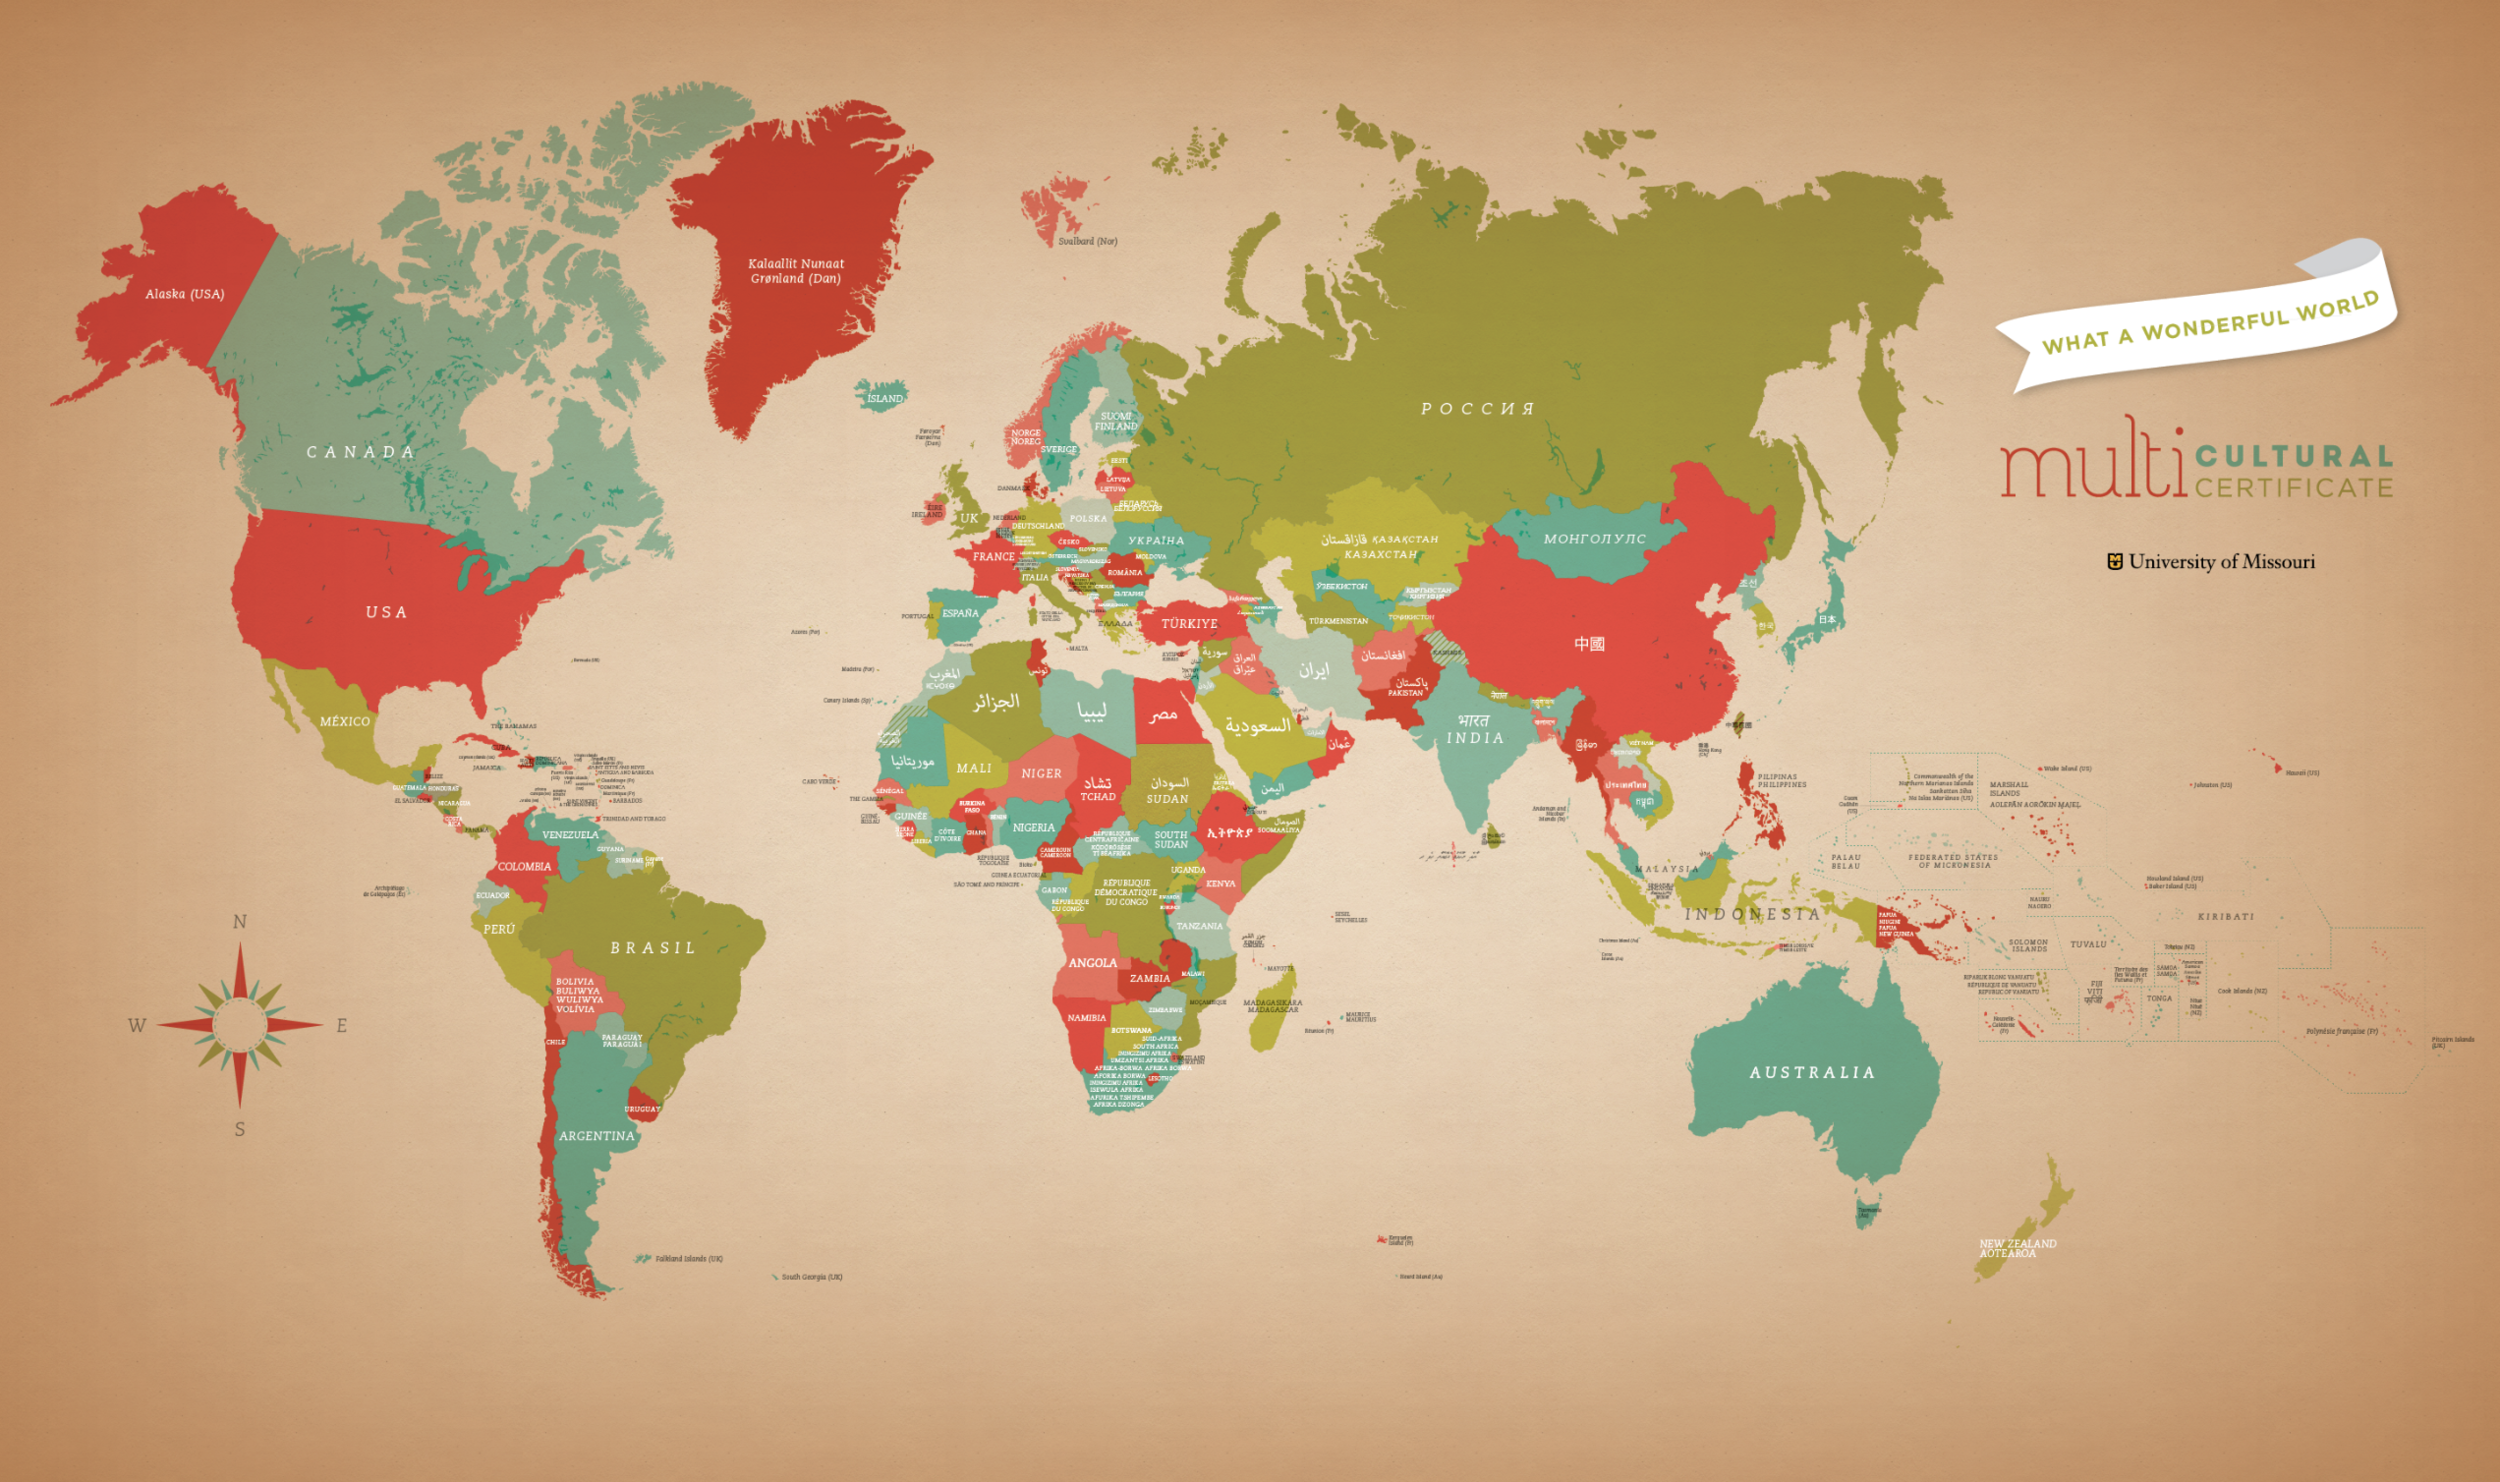 World map in endonyms – the official languages within each country | Avery Enderle Wagner